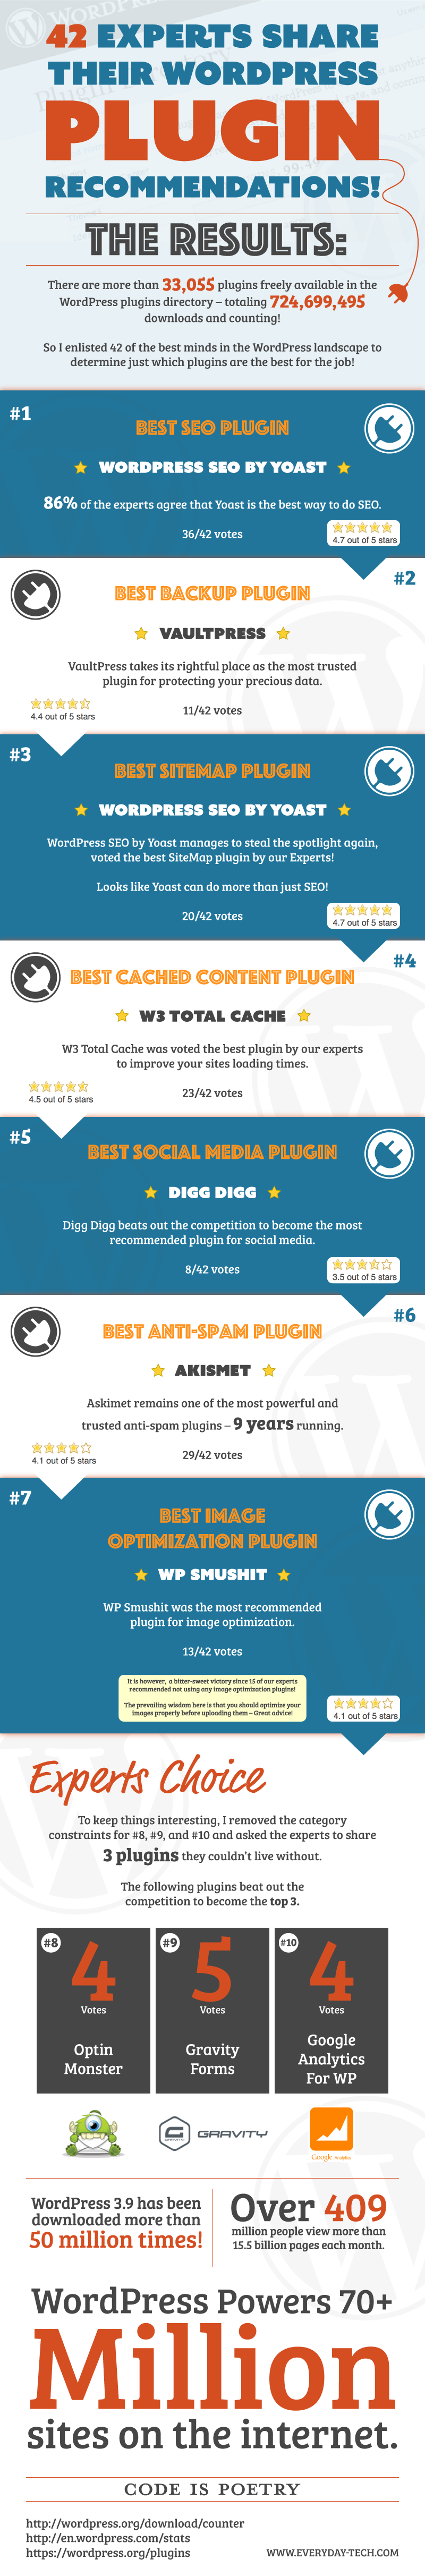 42-Experts-Share-Their-Top-10-Must-Have-WordPress-Plugins-Infographic